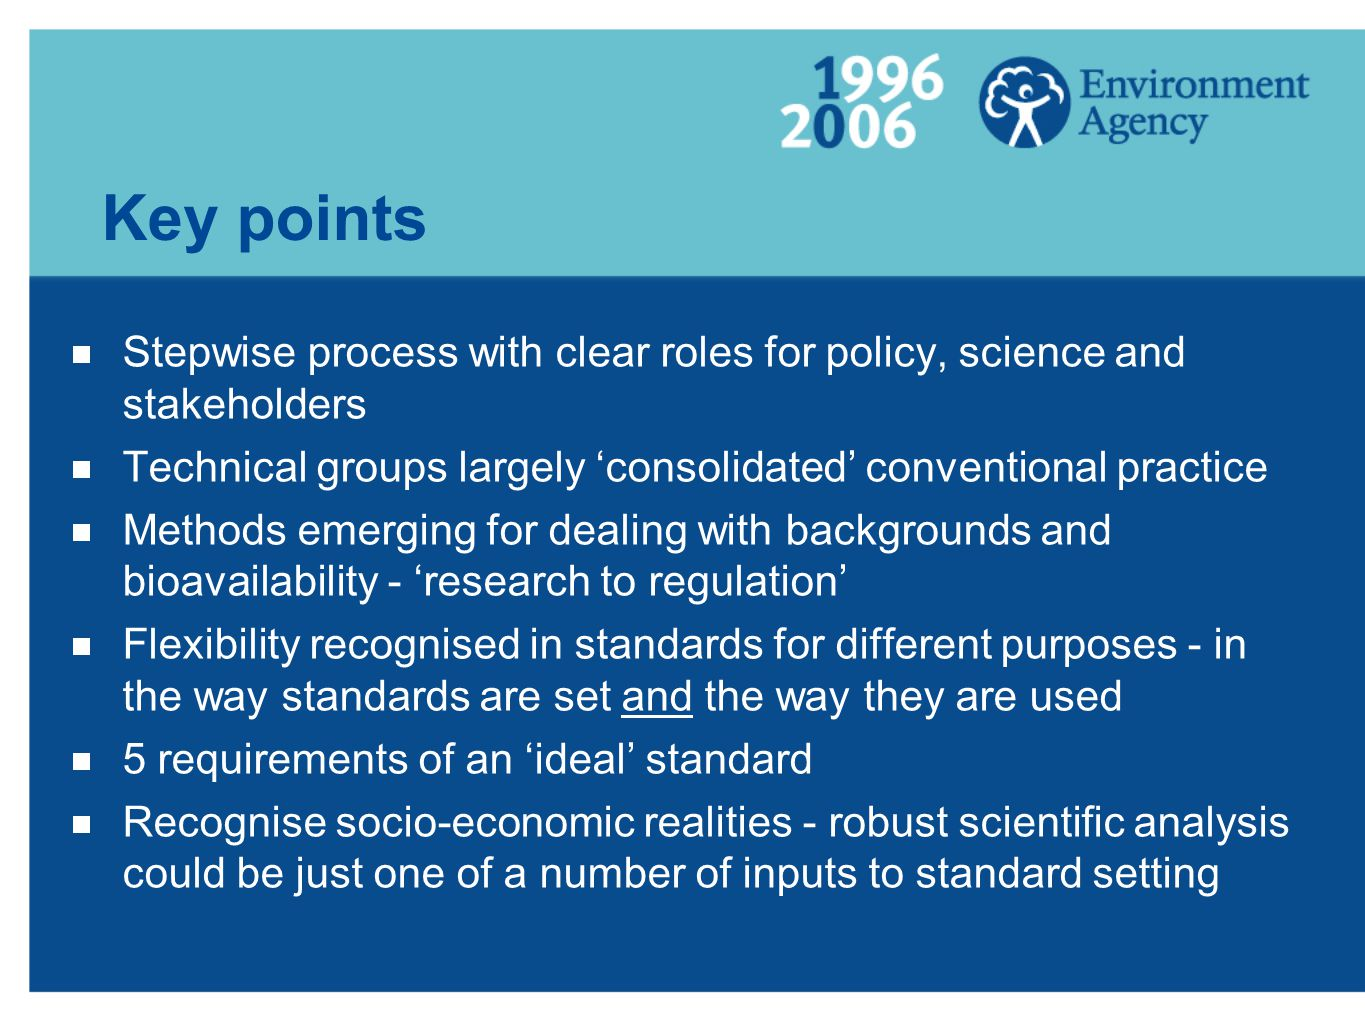 Key points  Stepwise process with clear roles for policy, science and stakeholders  Technical groups largely 'consolidated' conventional practice  Methods emerging for dealing with backgrounds and bioavailability - 'research to regulation'  Flexibility recognised in standards for different purposes - in the way standards are set and the way they are used  5 requirements of an 'ideal' standard  Recognise socio-economic realities - robust scientific analysis could be just one of a number of inputs to standard setting